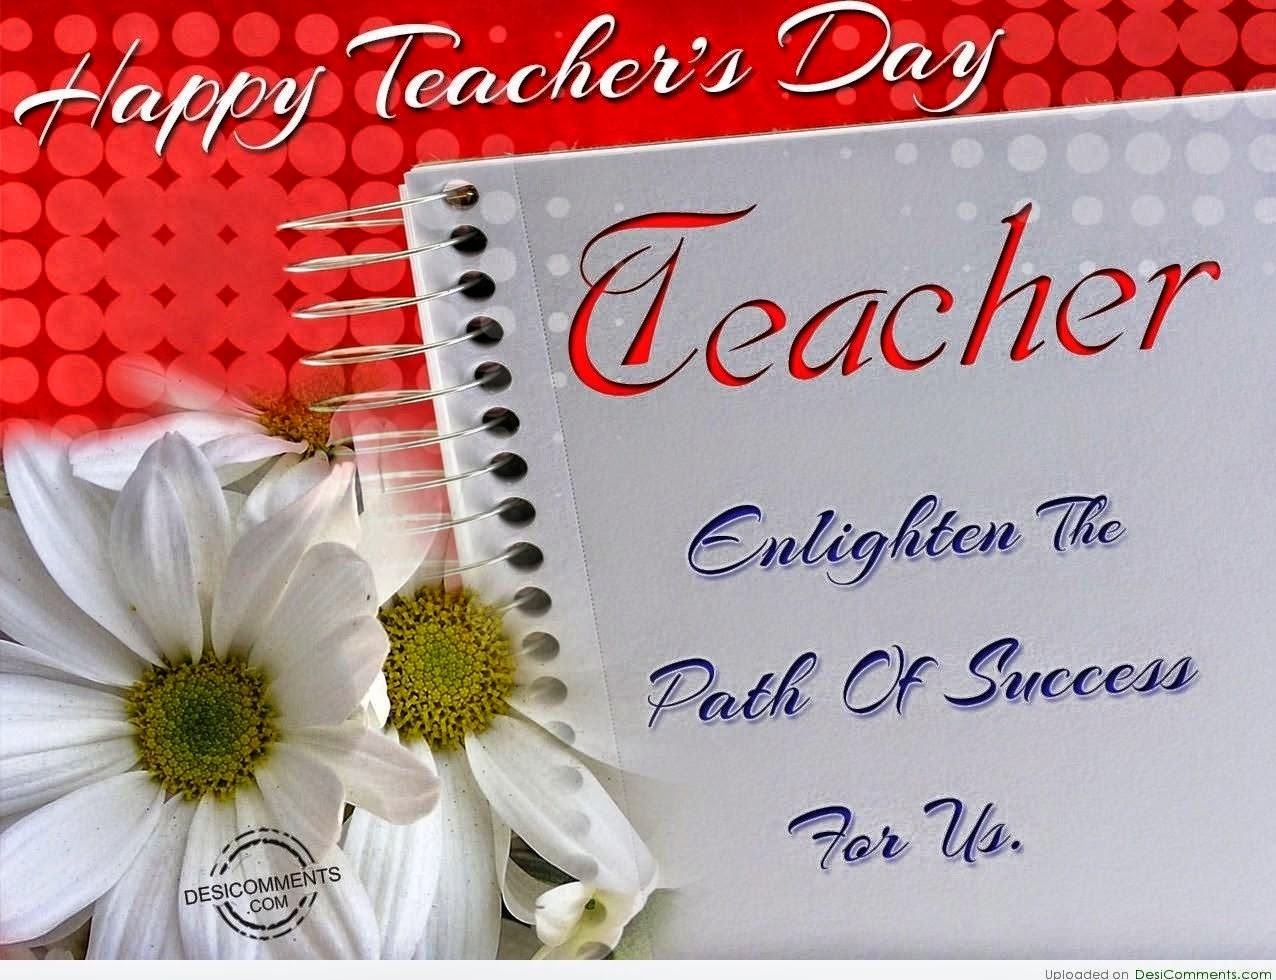 whatsapp teachers day cards, pictures, images